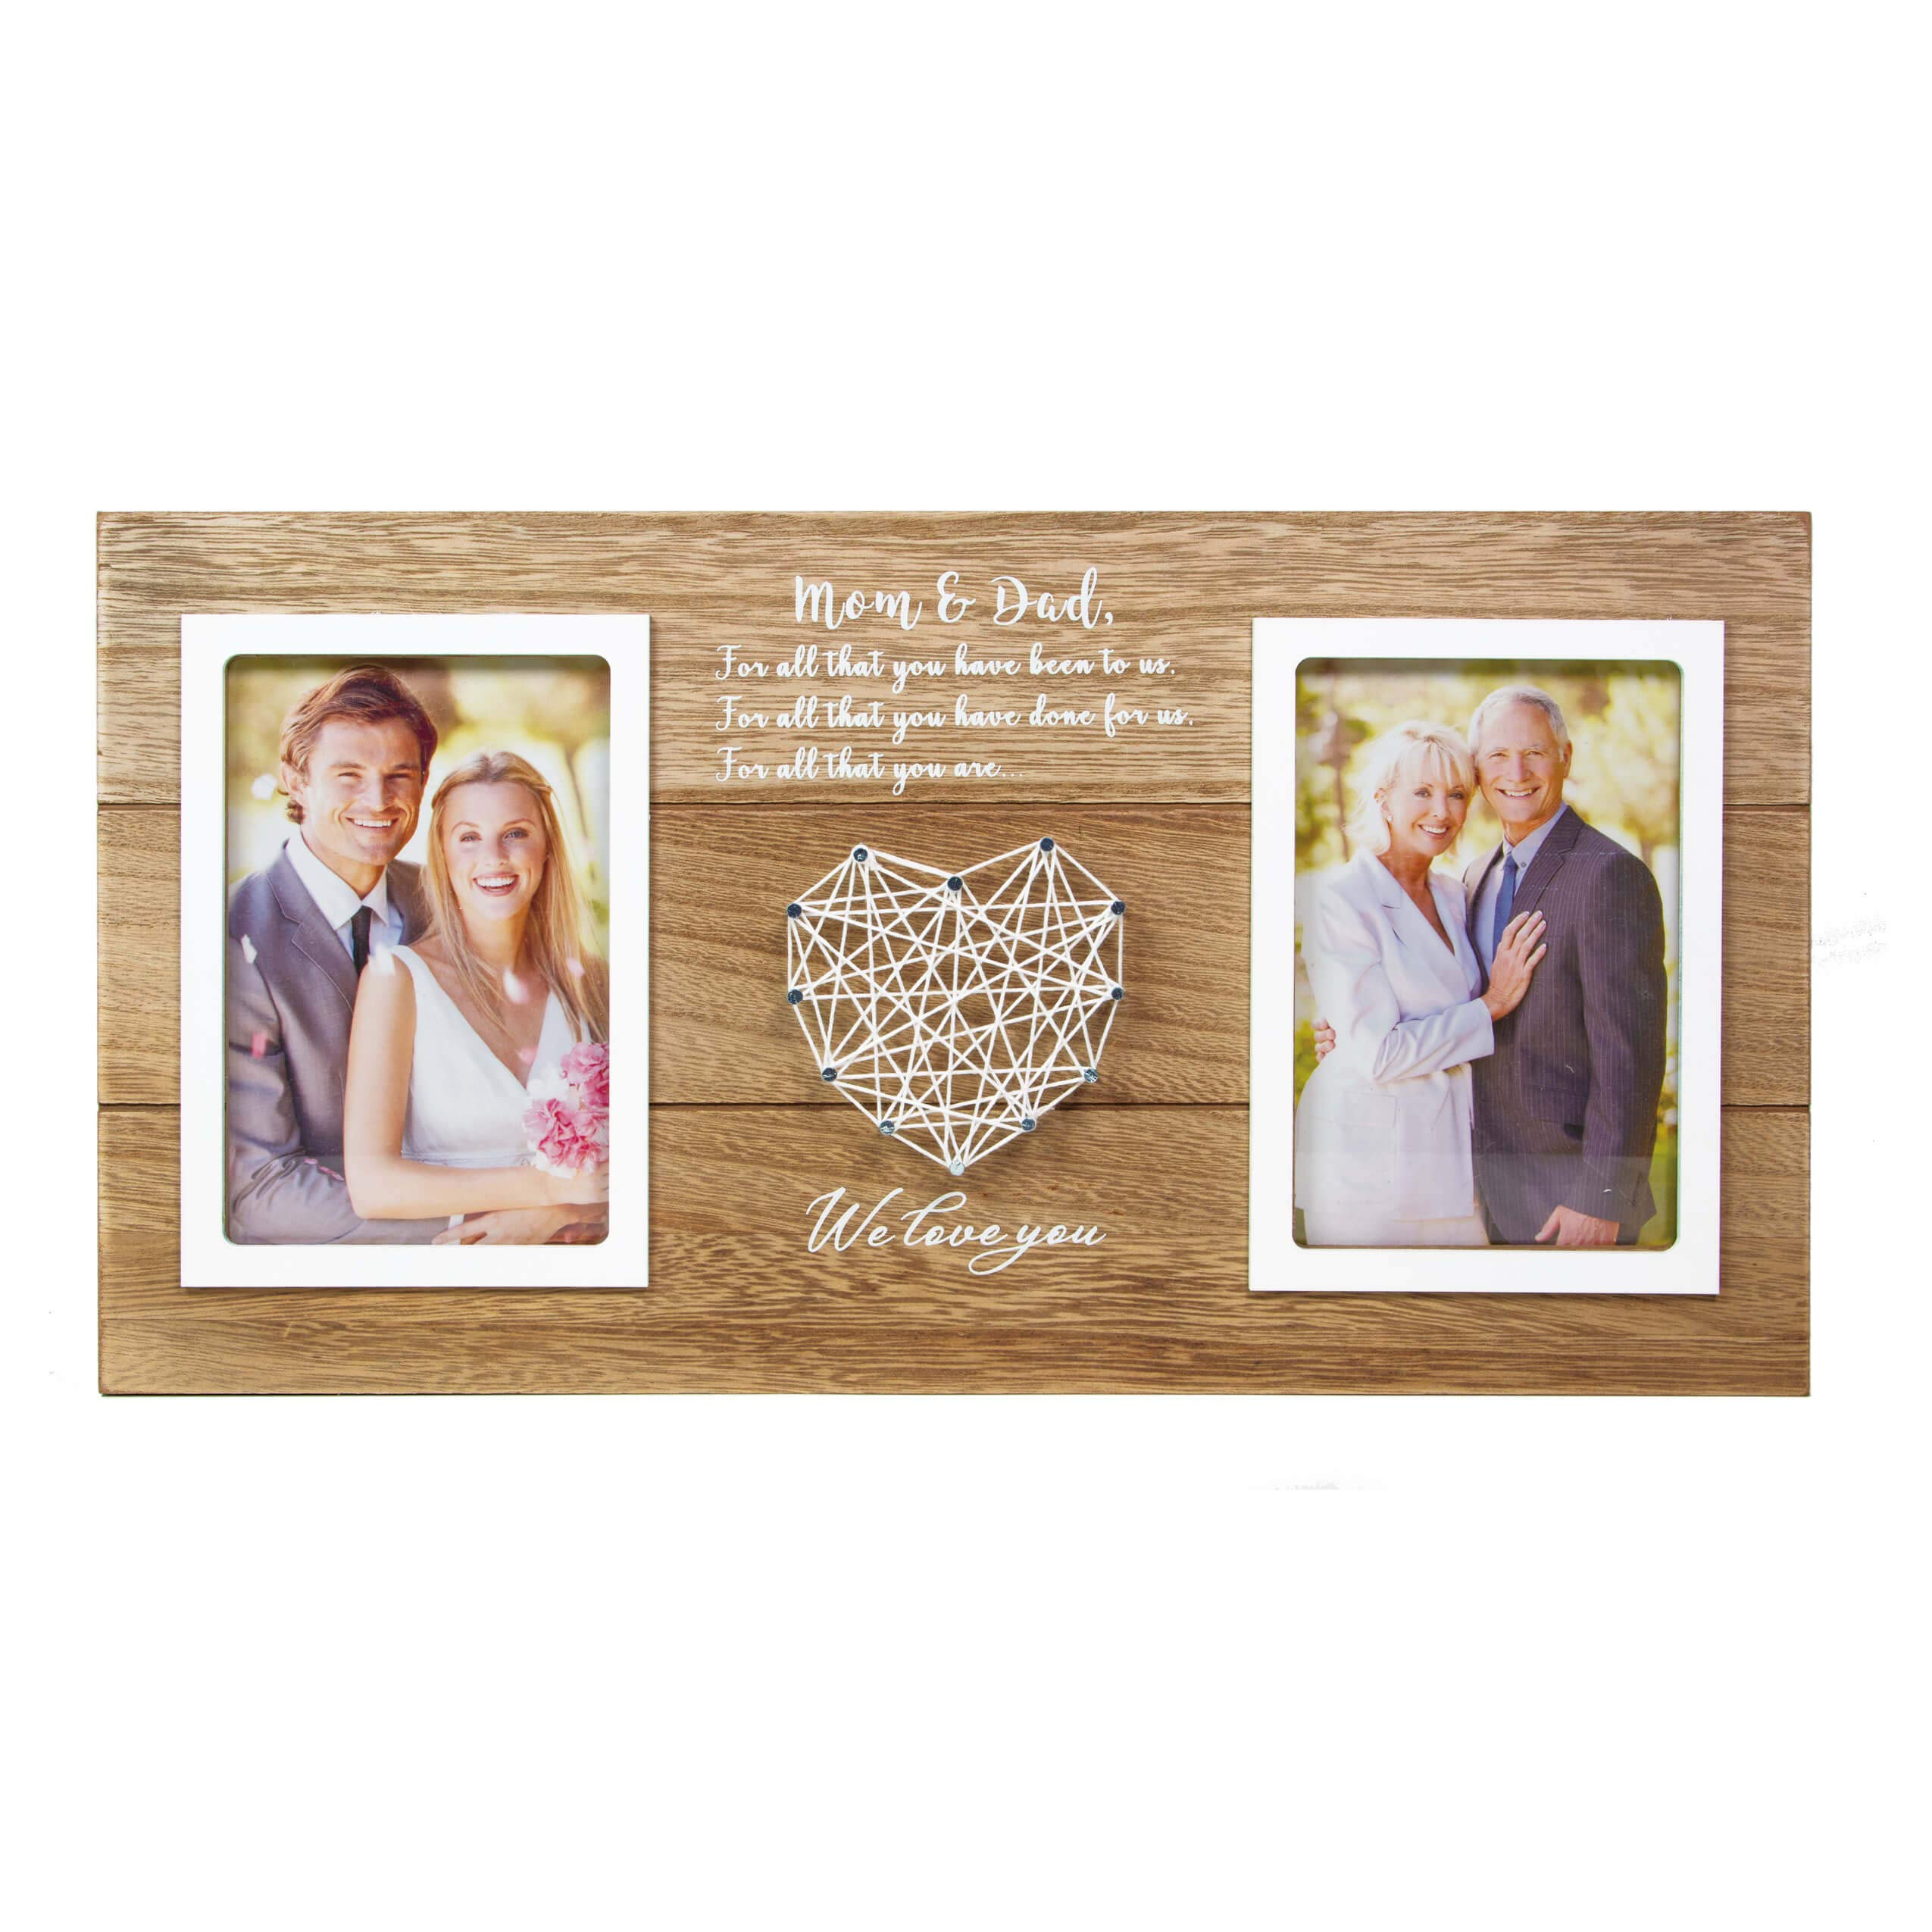 CDM product VILIGHT Wedding Gifts for Parents from Bride and Groom - Rustic Picture Frame for Dad and Mom - Holds 2 4x6 Photos big image